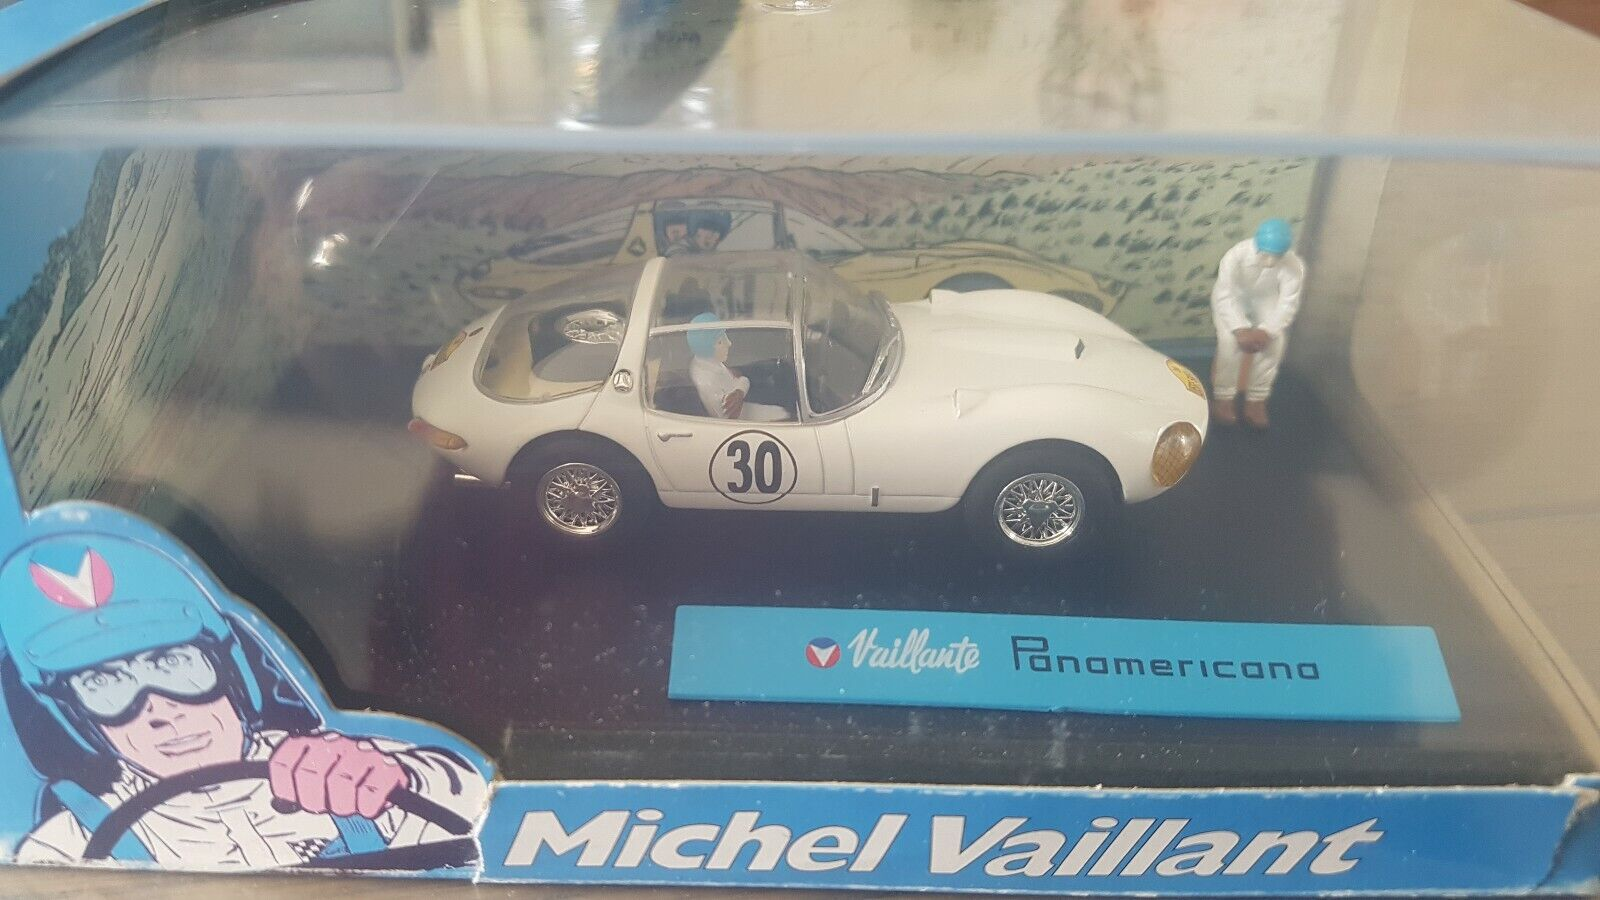 NEUF BOITE 1 43 COLLECTION BD VOITURE MICHEL VAILLANT PANAMERICANA